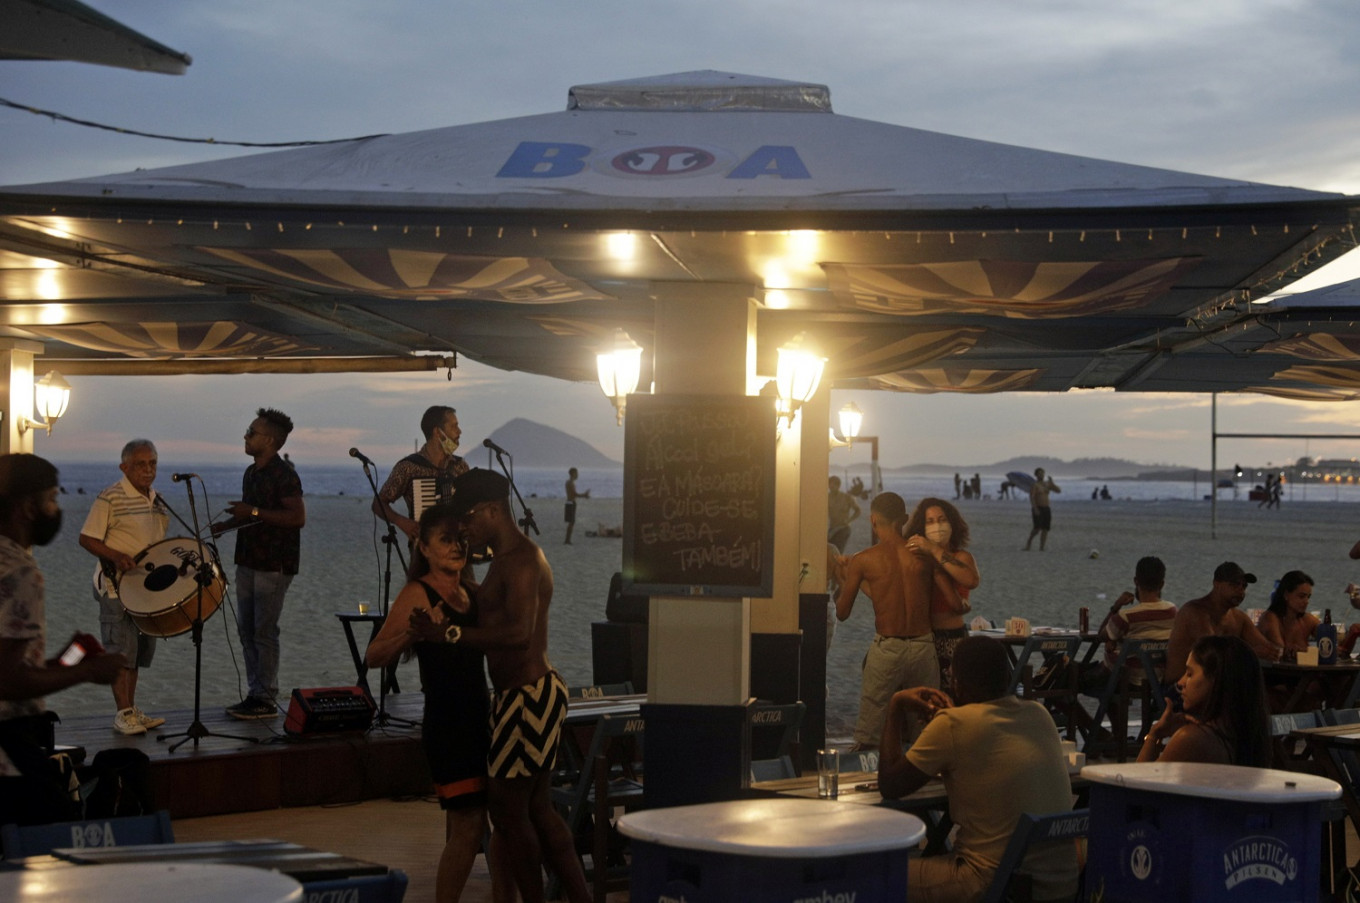 Young Brazilian partygoers stir fears of second COVID-19 wave